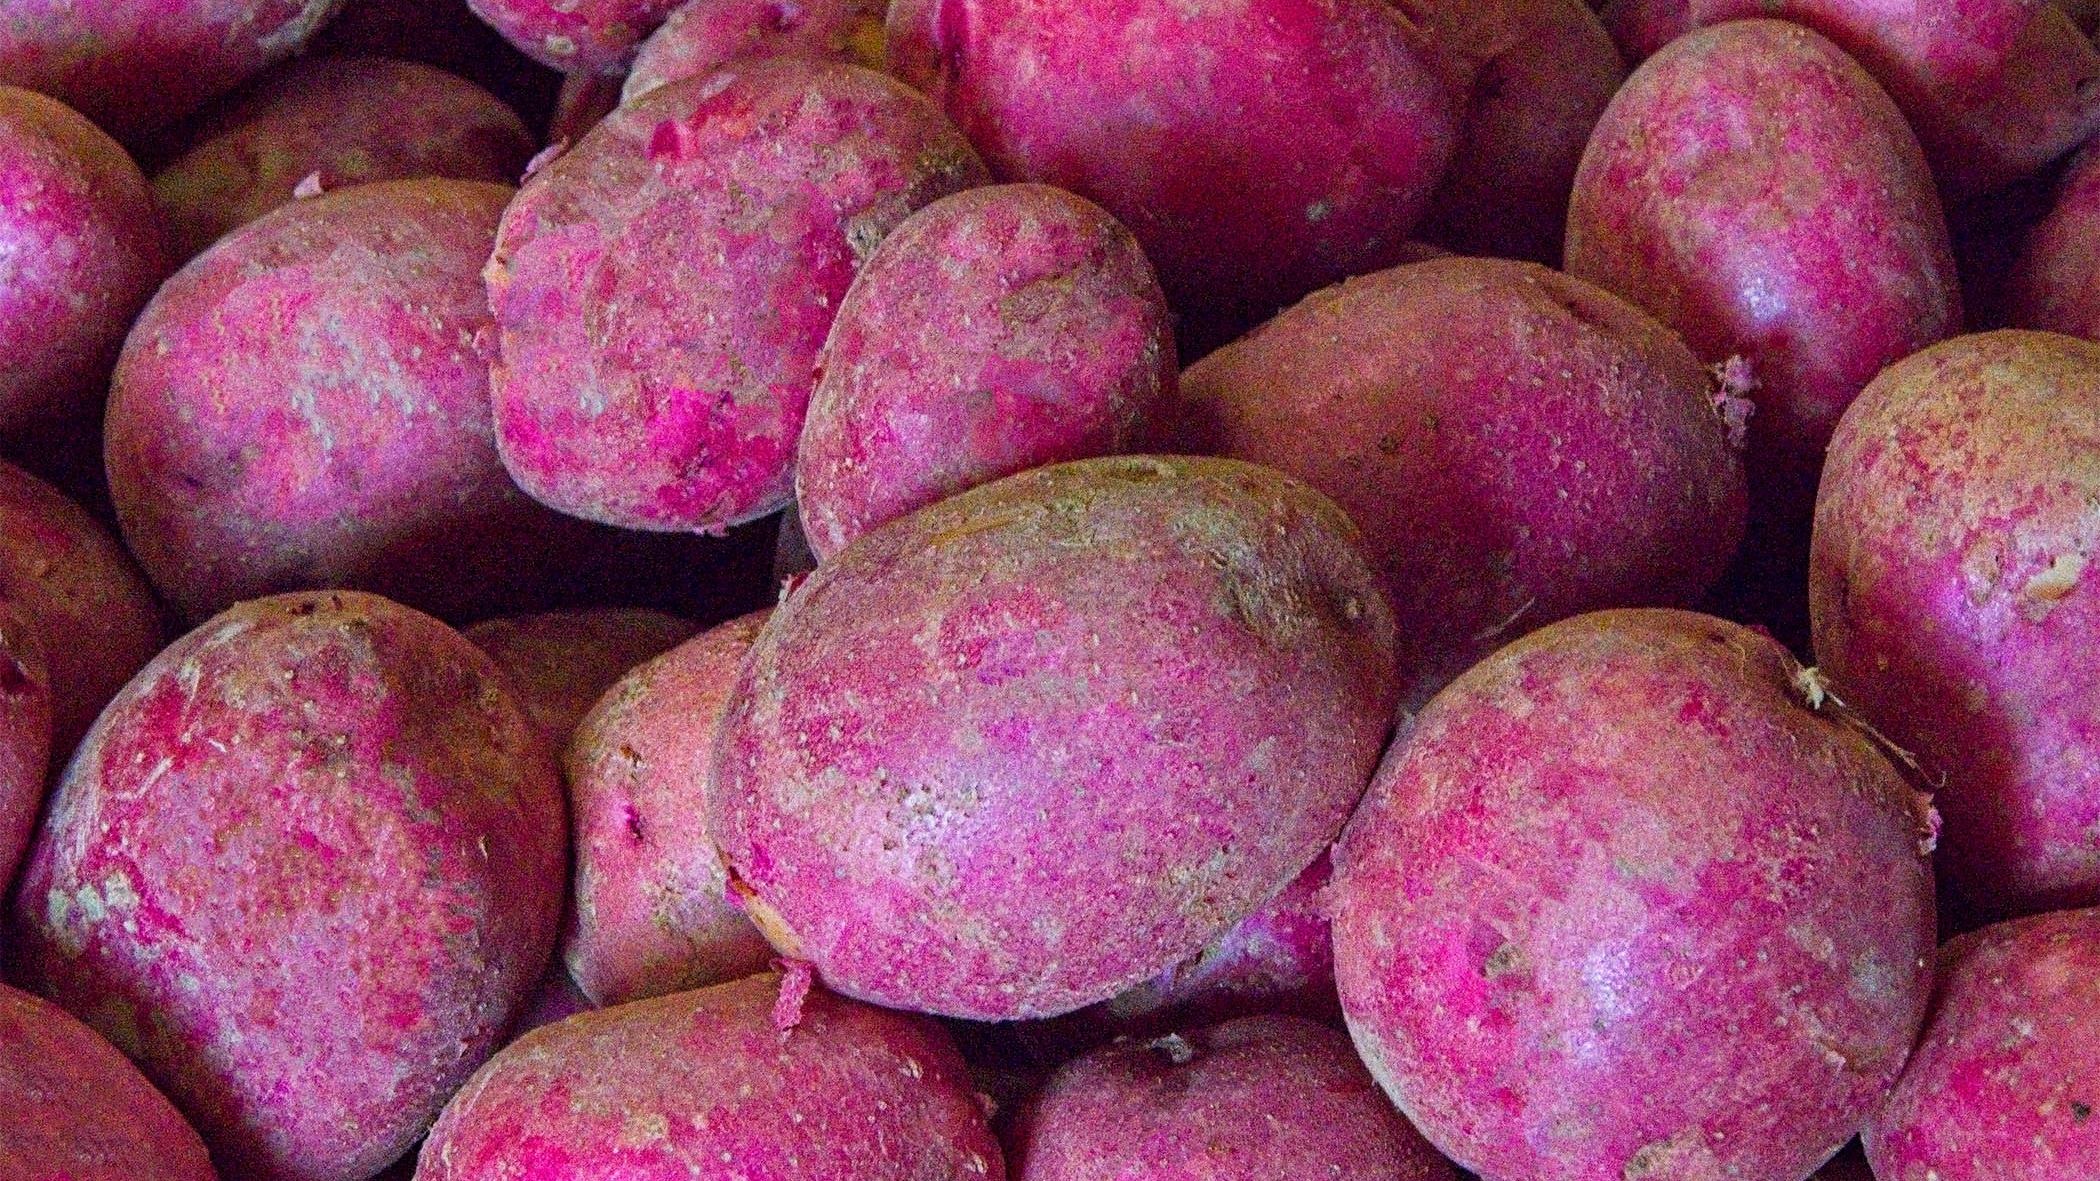 Red potatoes -